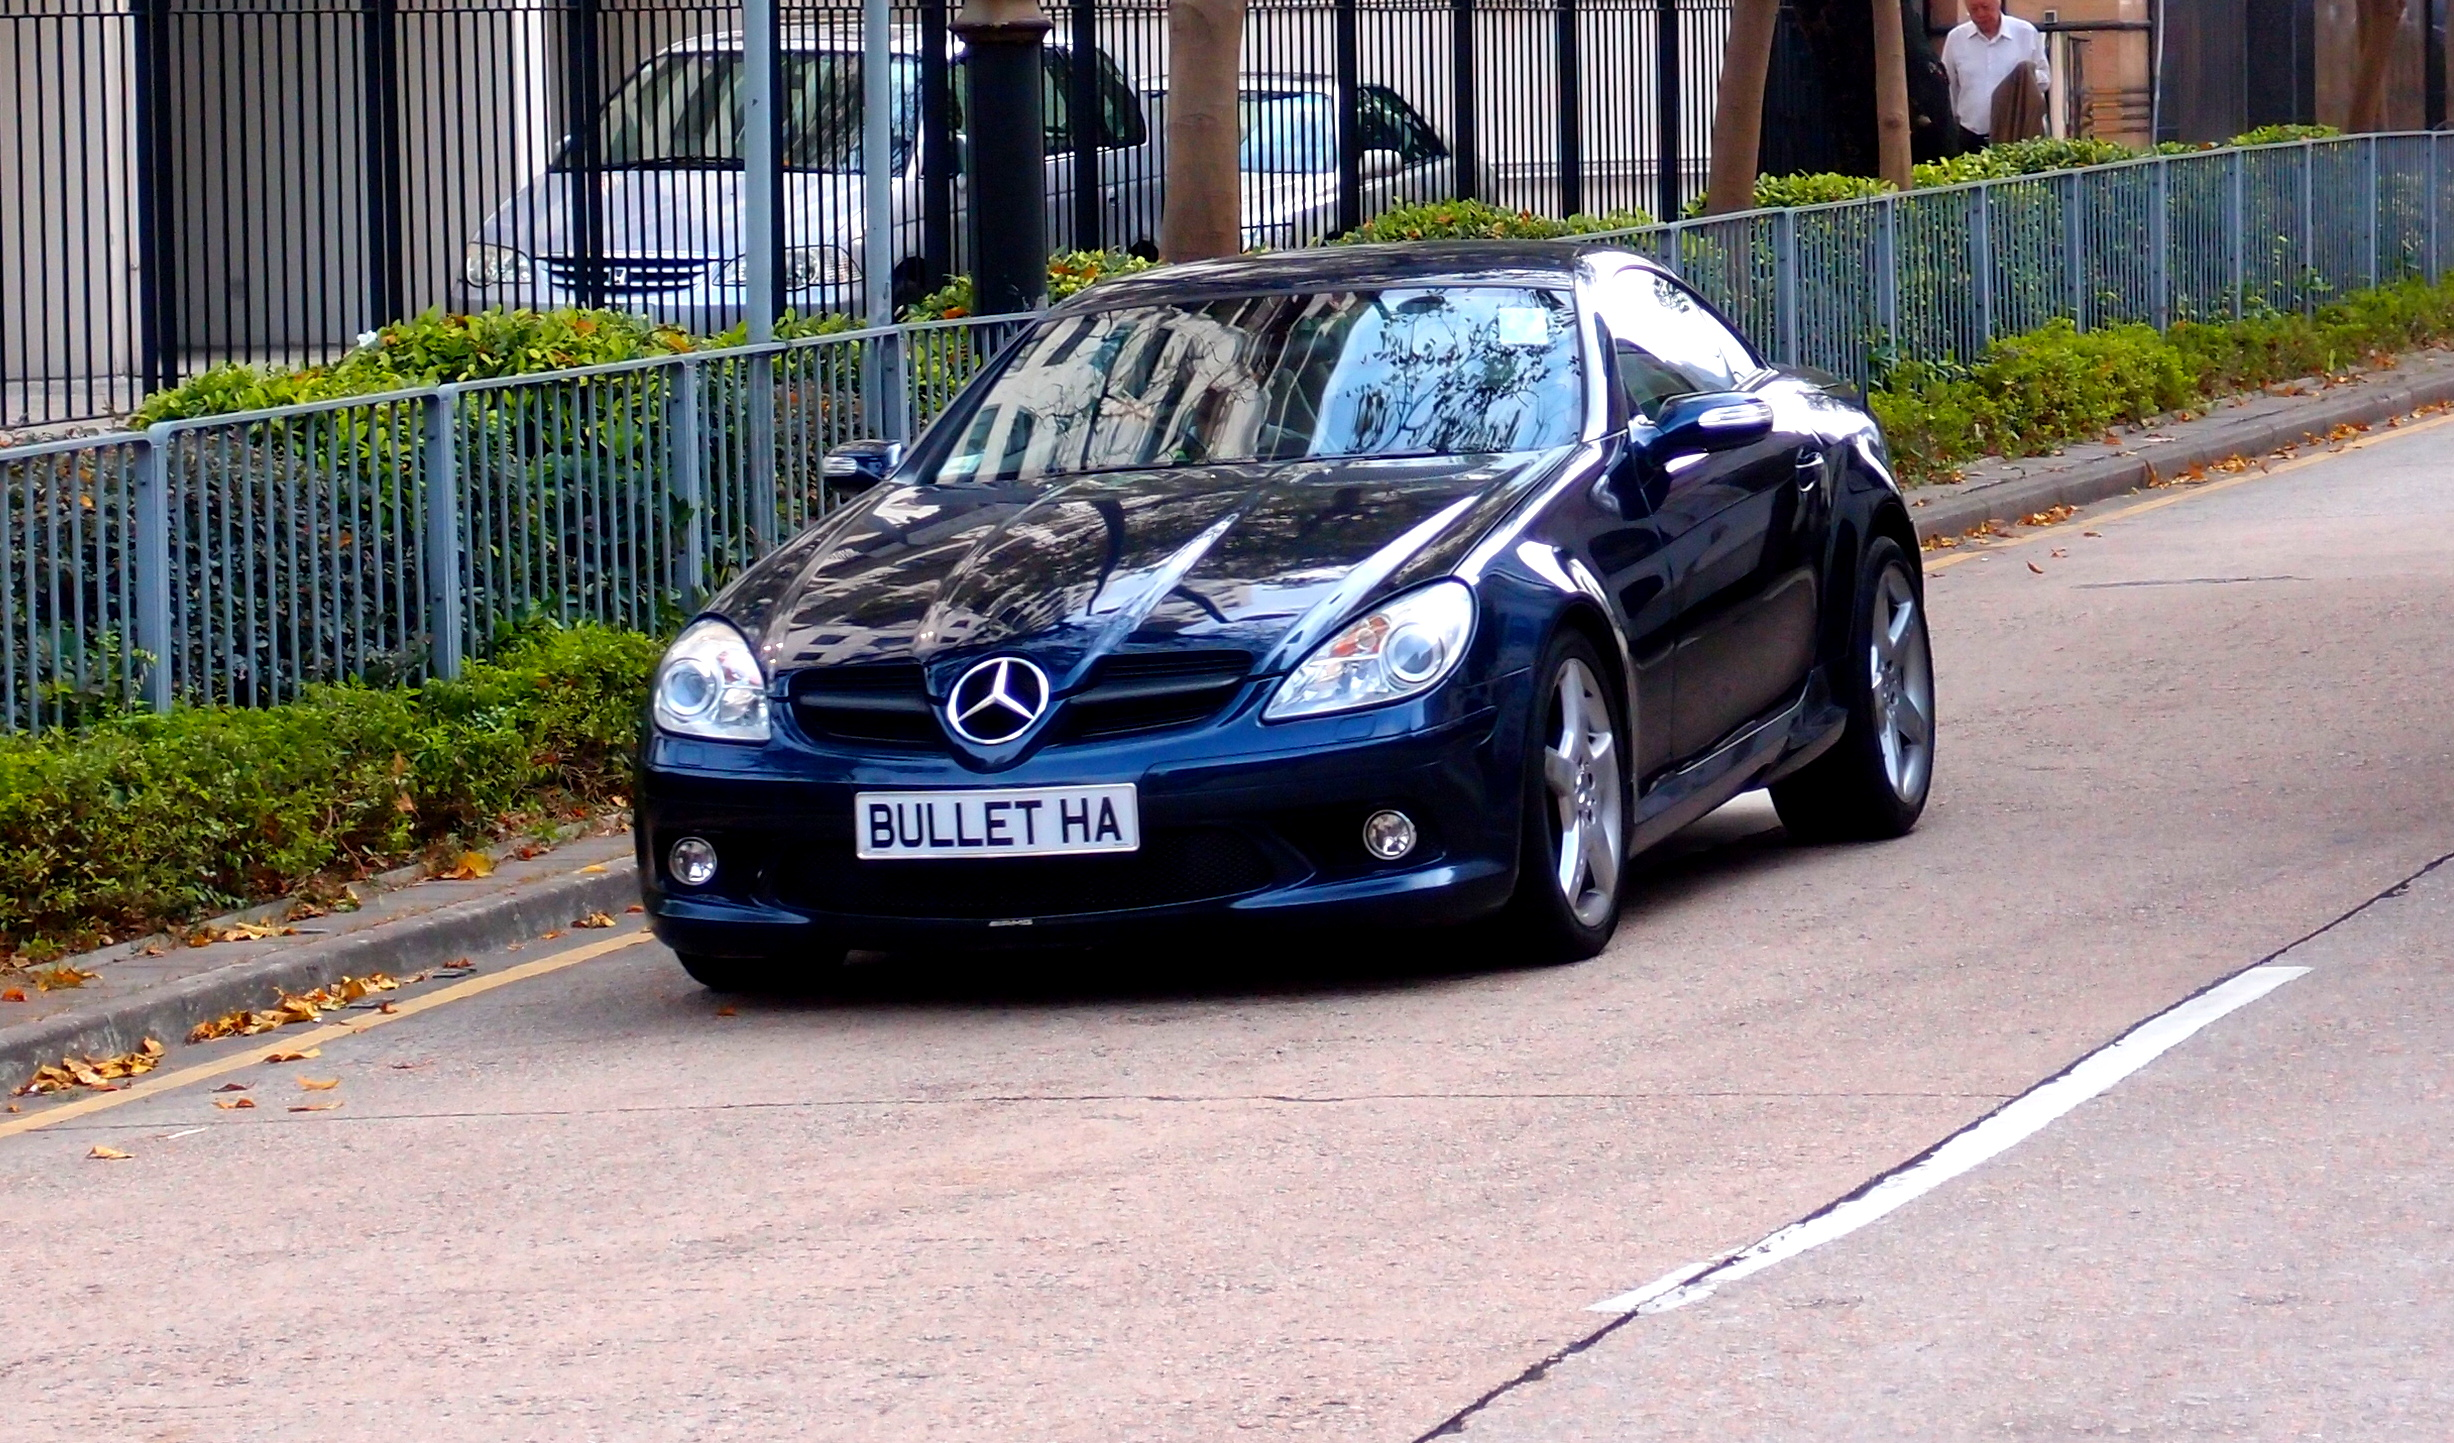 Interesting nickname on a number plate